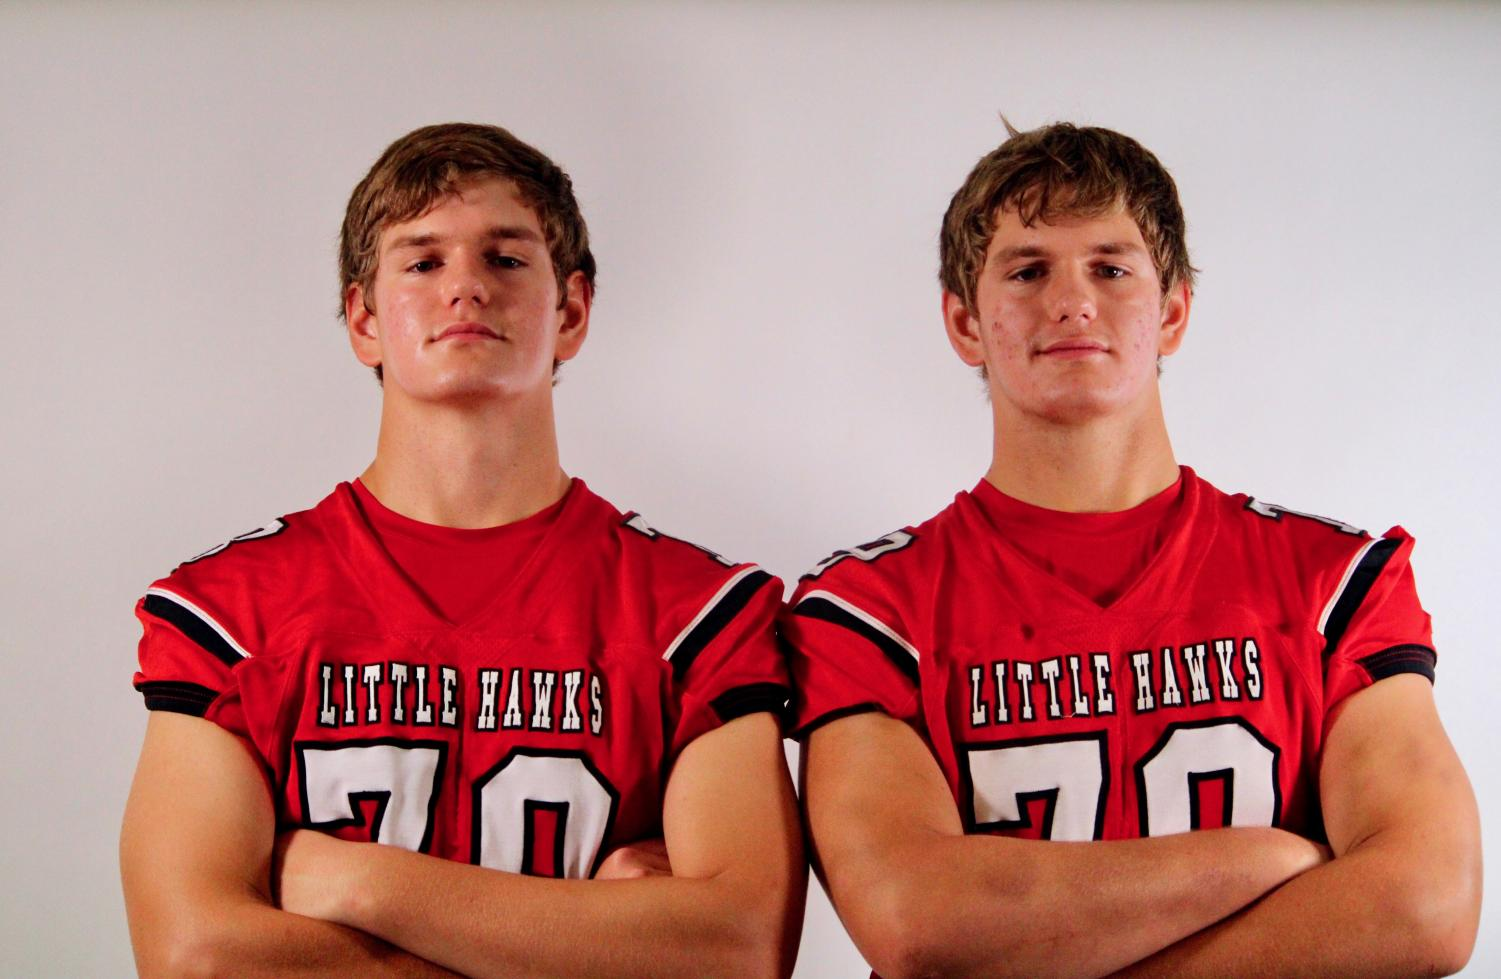 Ethan Goodrich '22 and Avery Goodrich '22 pose for a weekly football photoshoot.